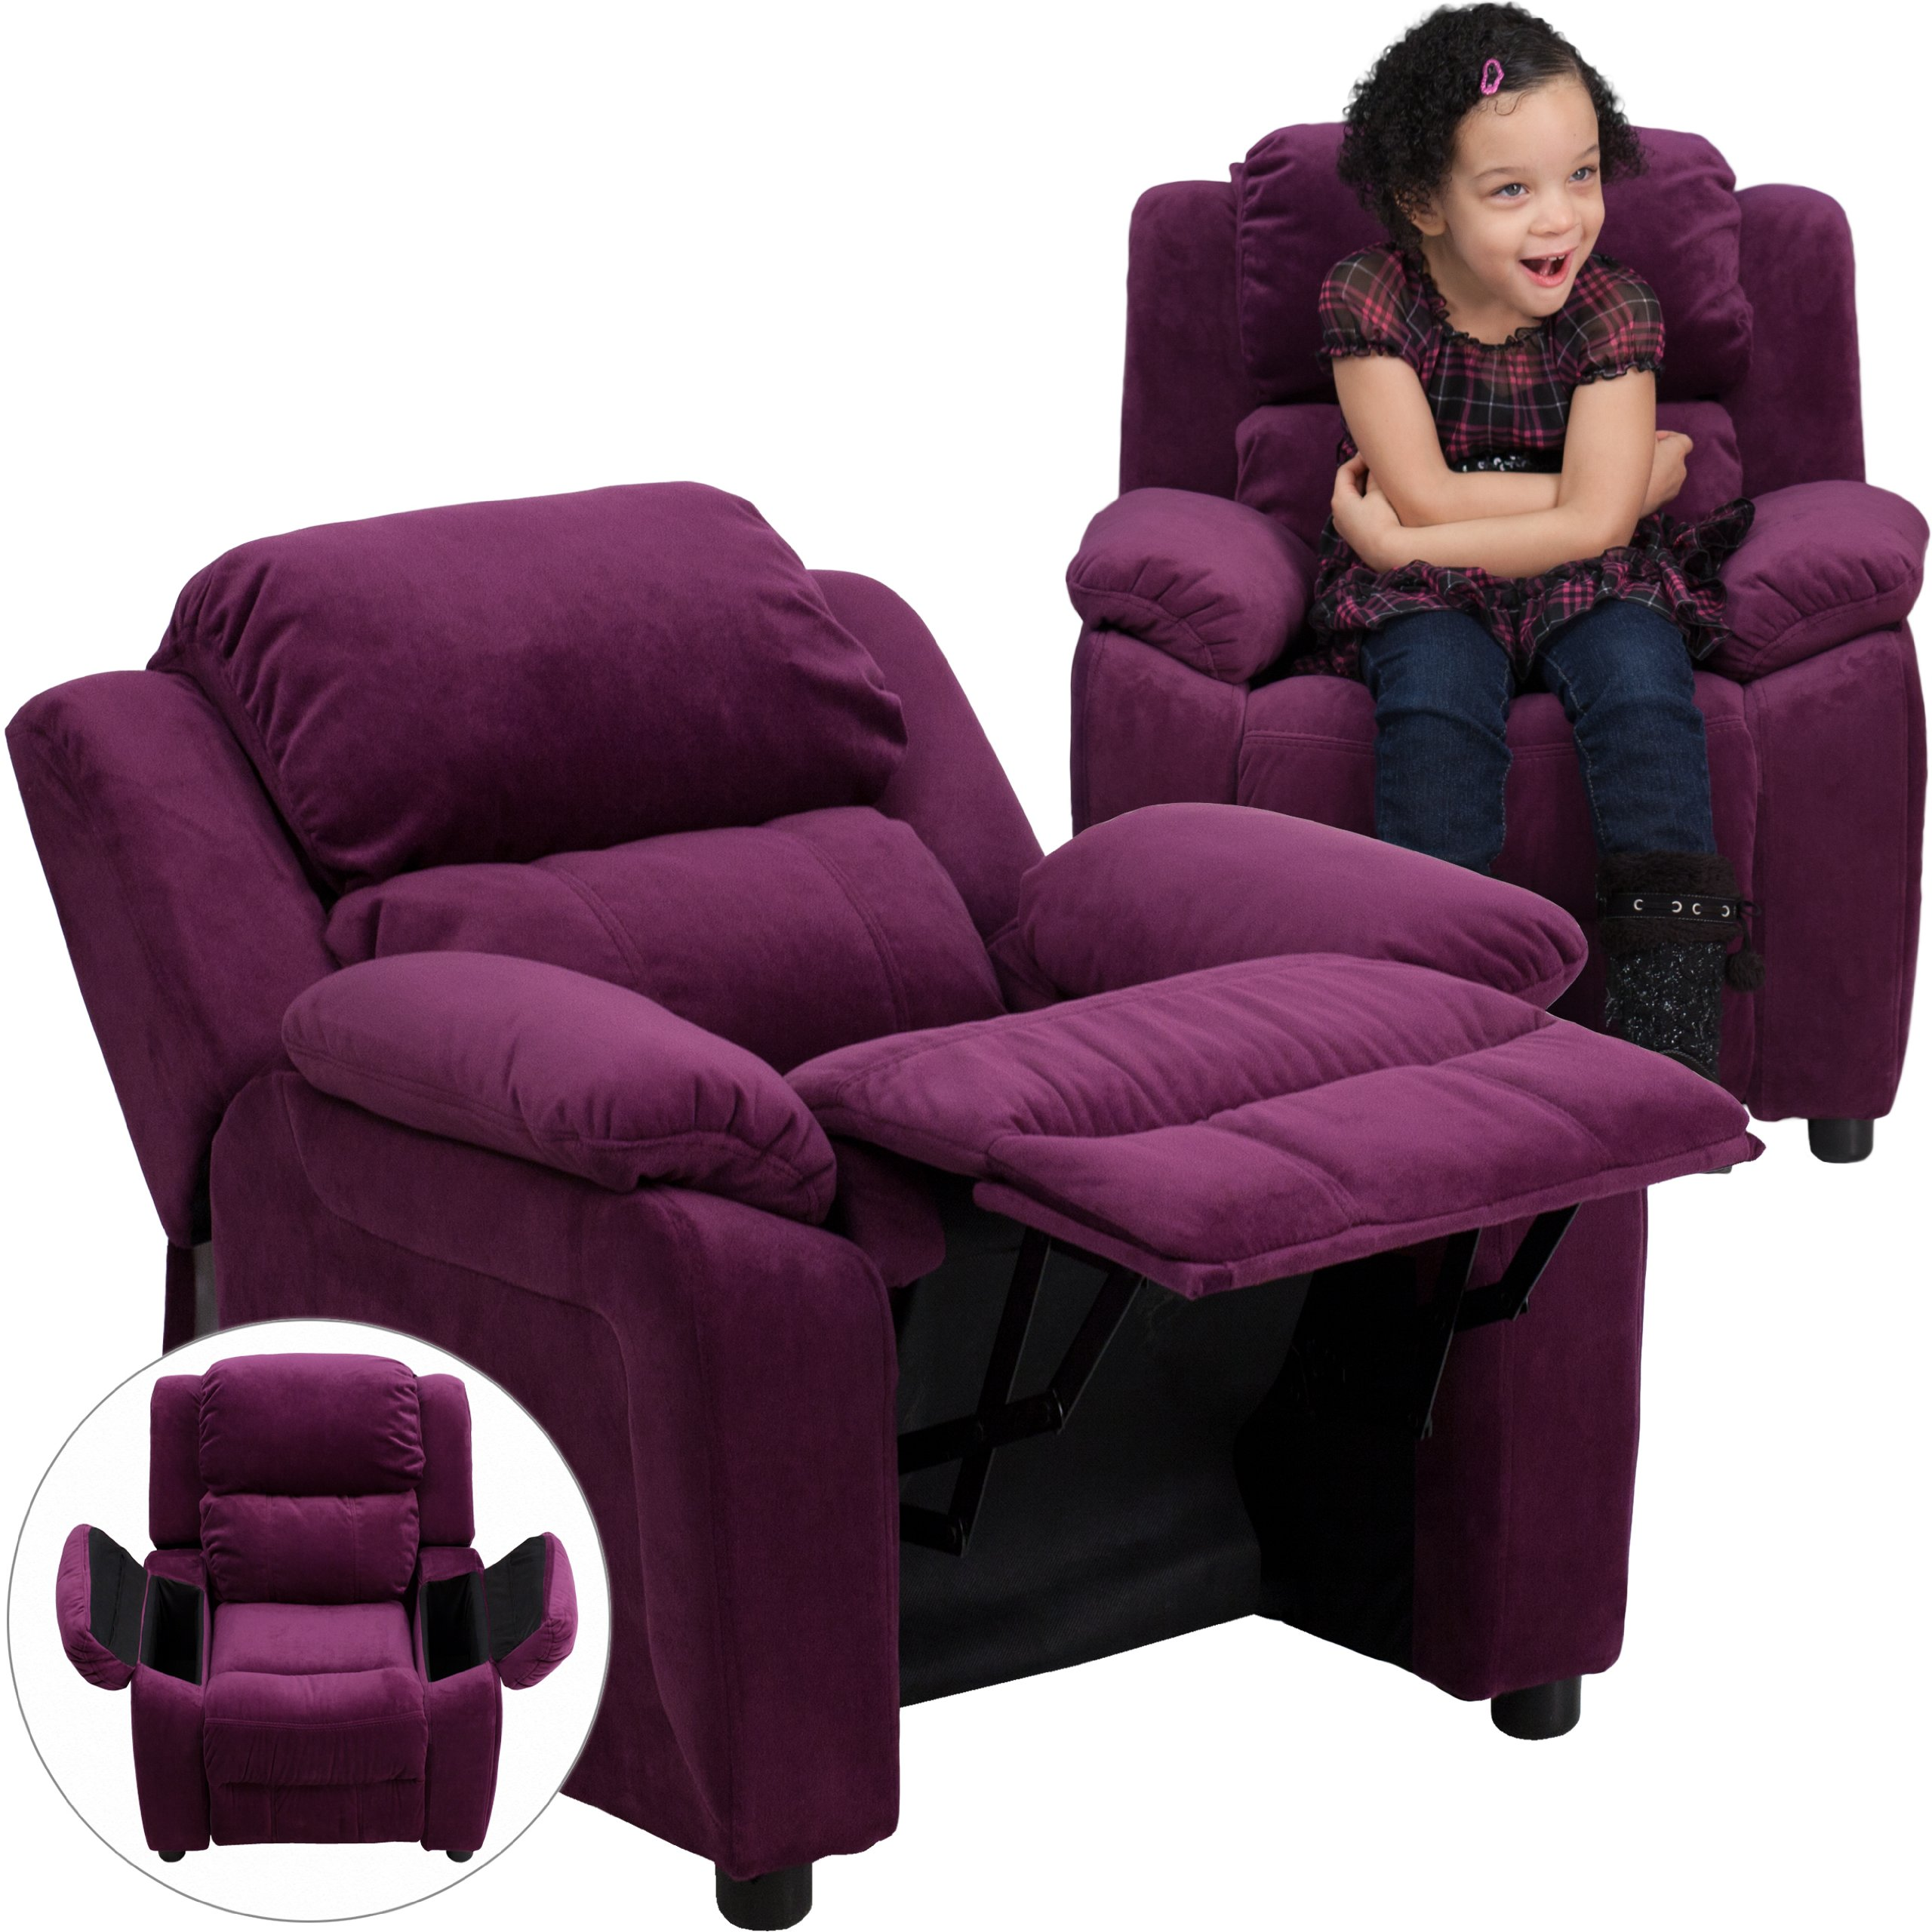 Winston Direct Kids' Series Deluxe Padded Contemporary Purple Microfiber Recliner with Storage Arms